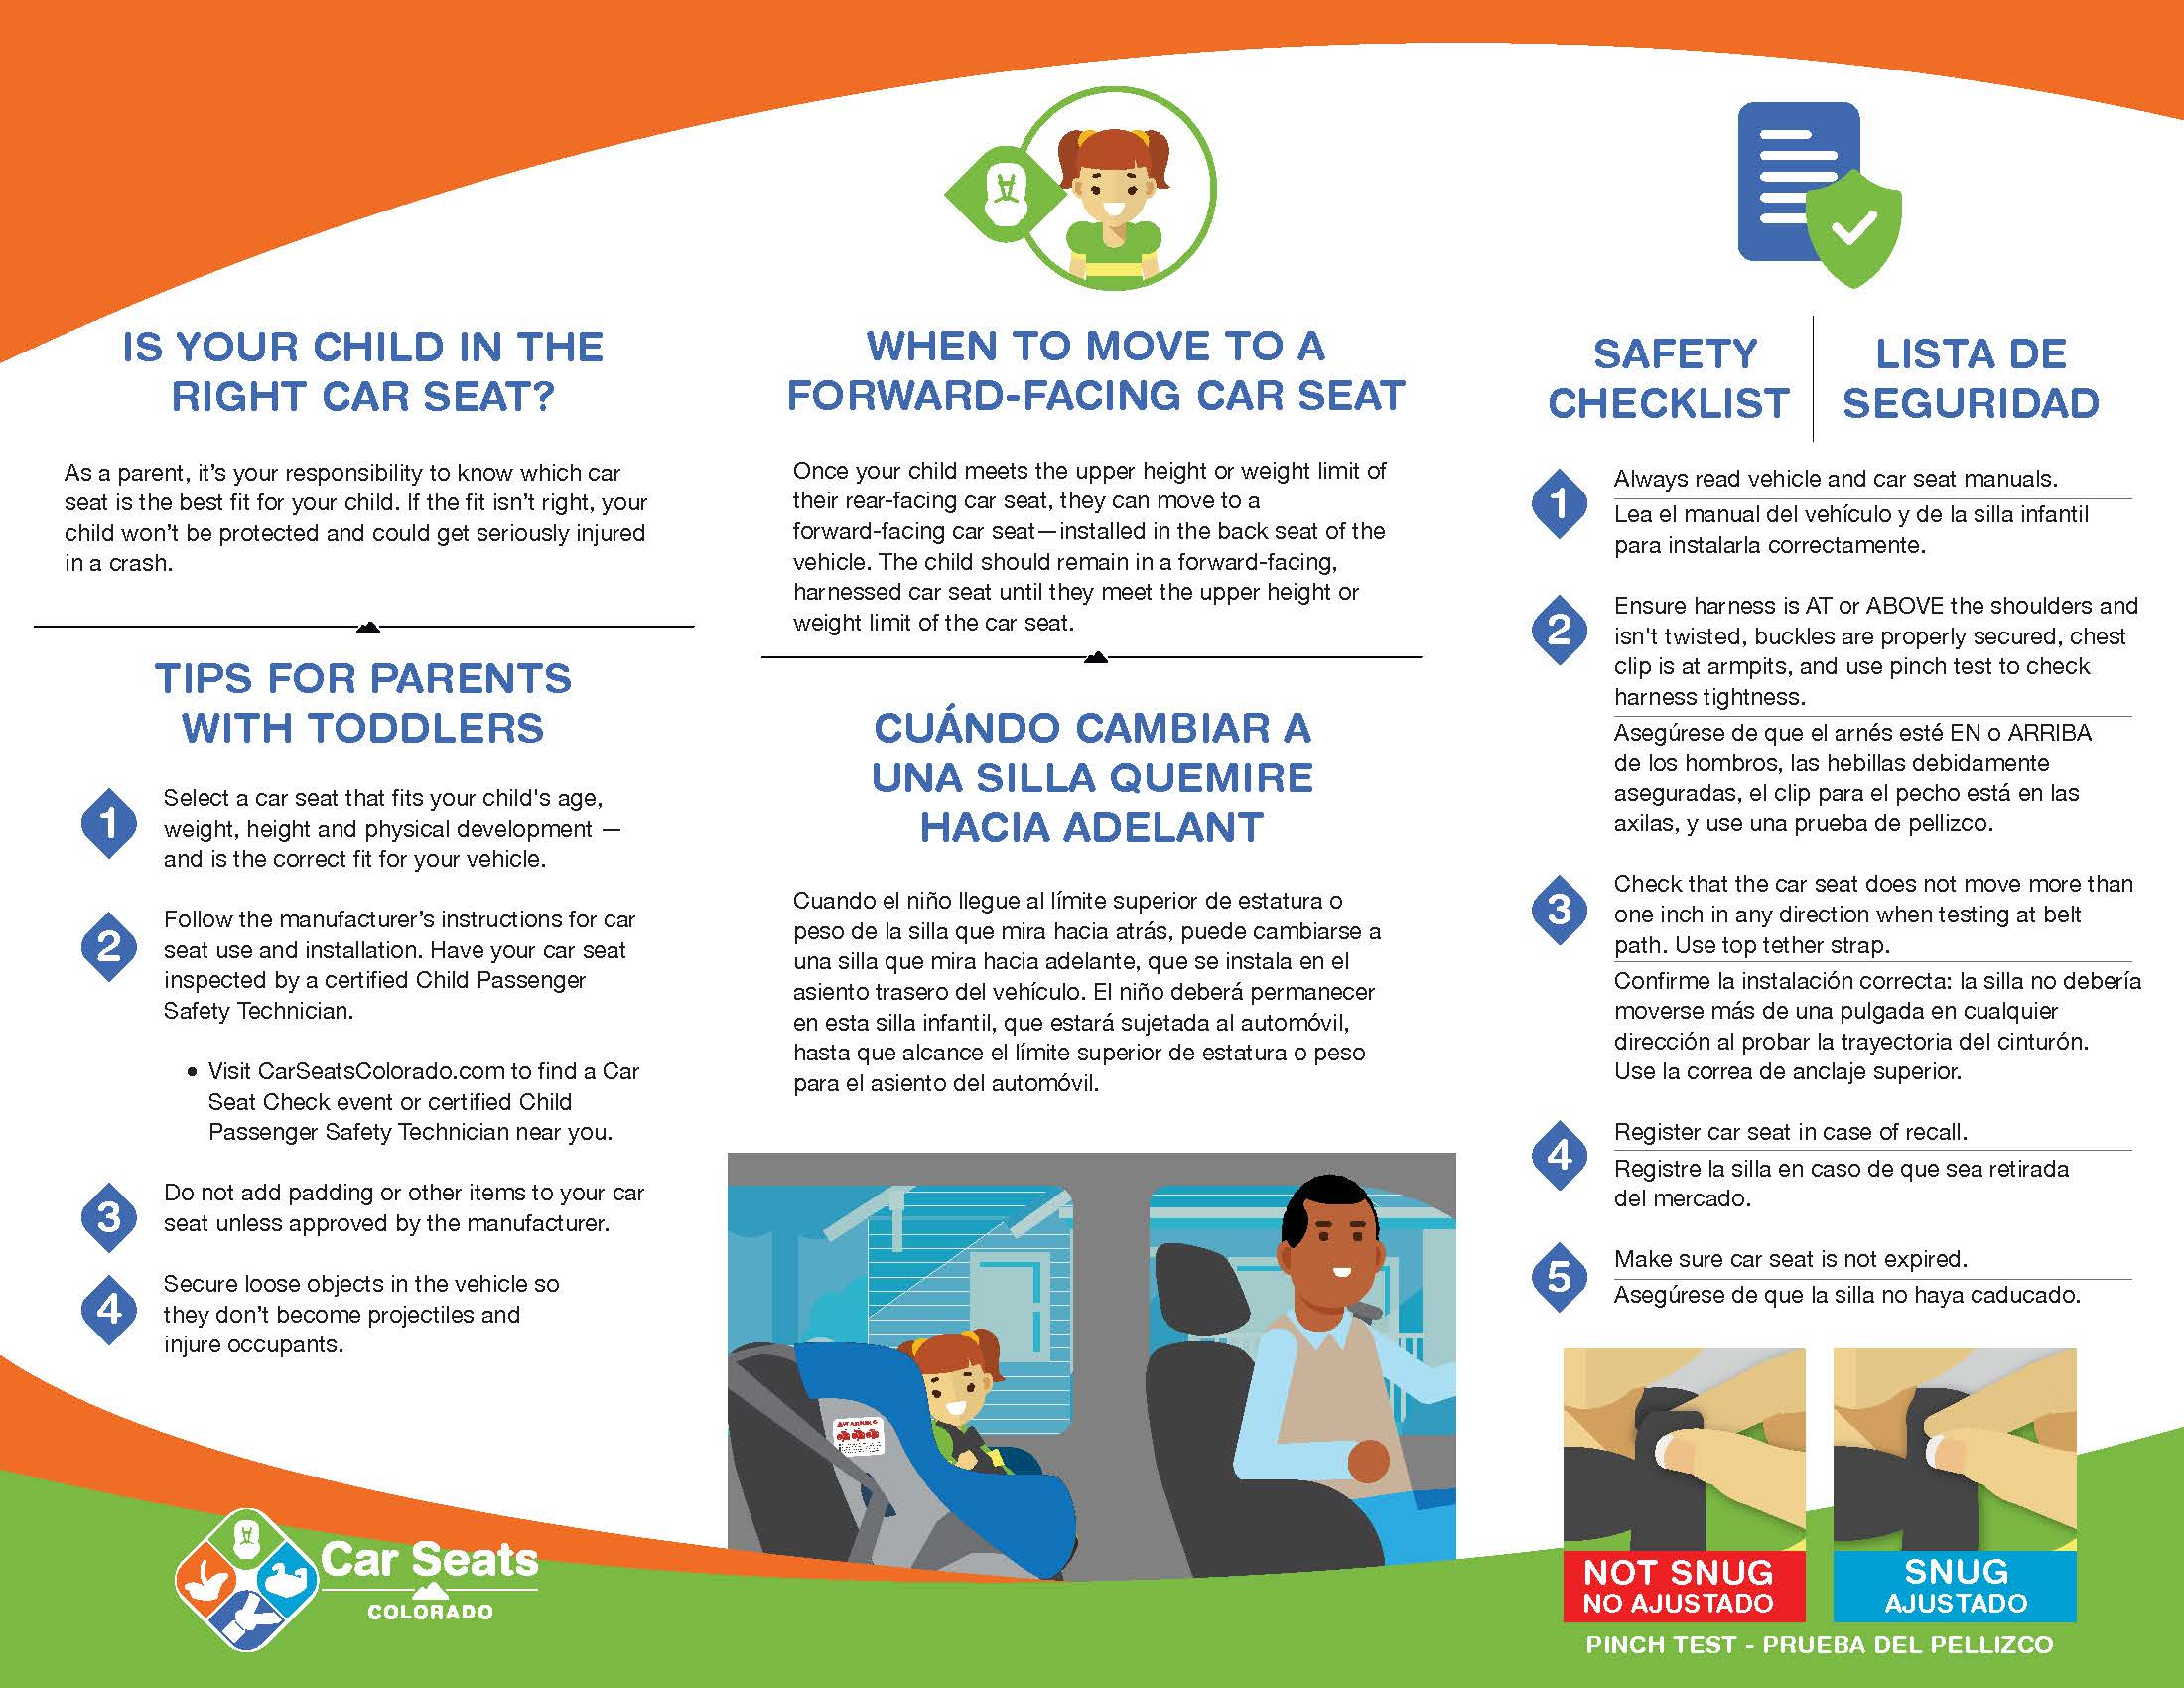 Child Safety Brochure (front-facing)